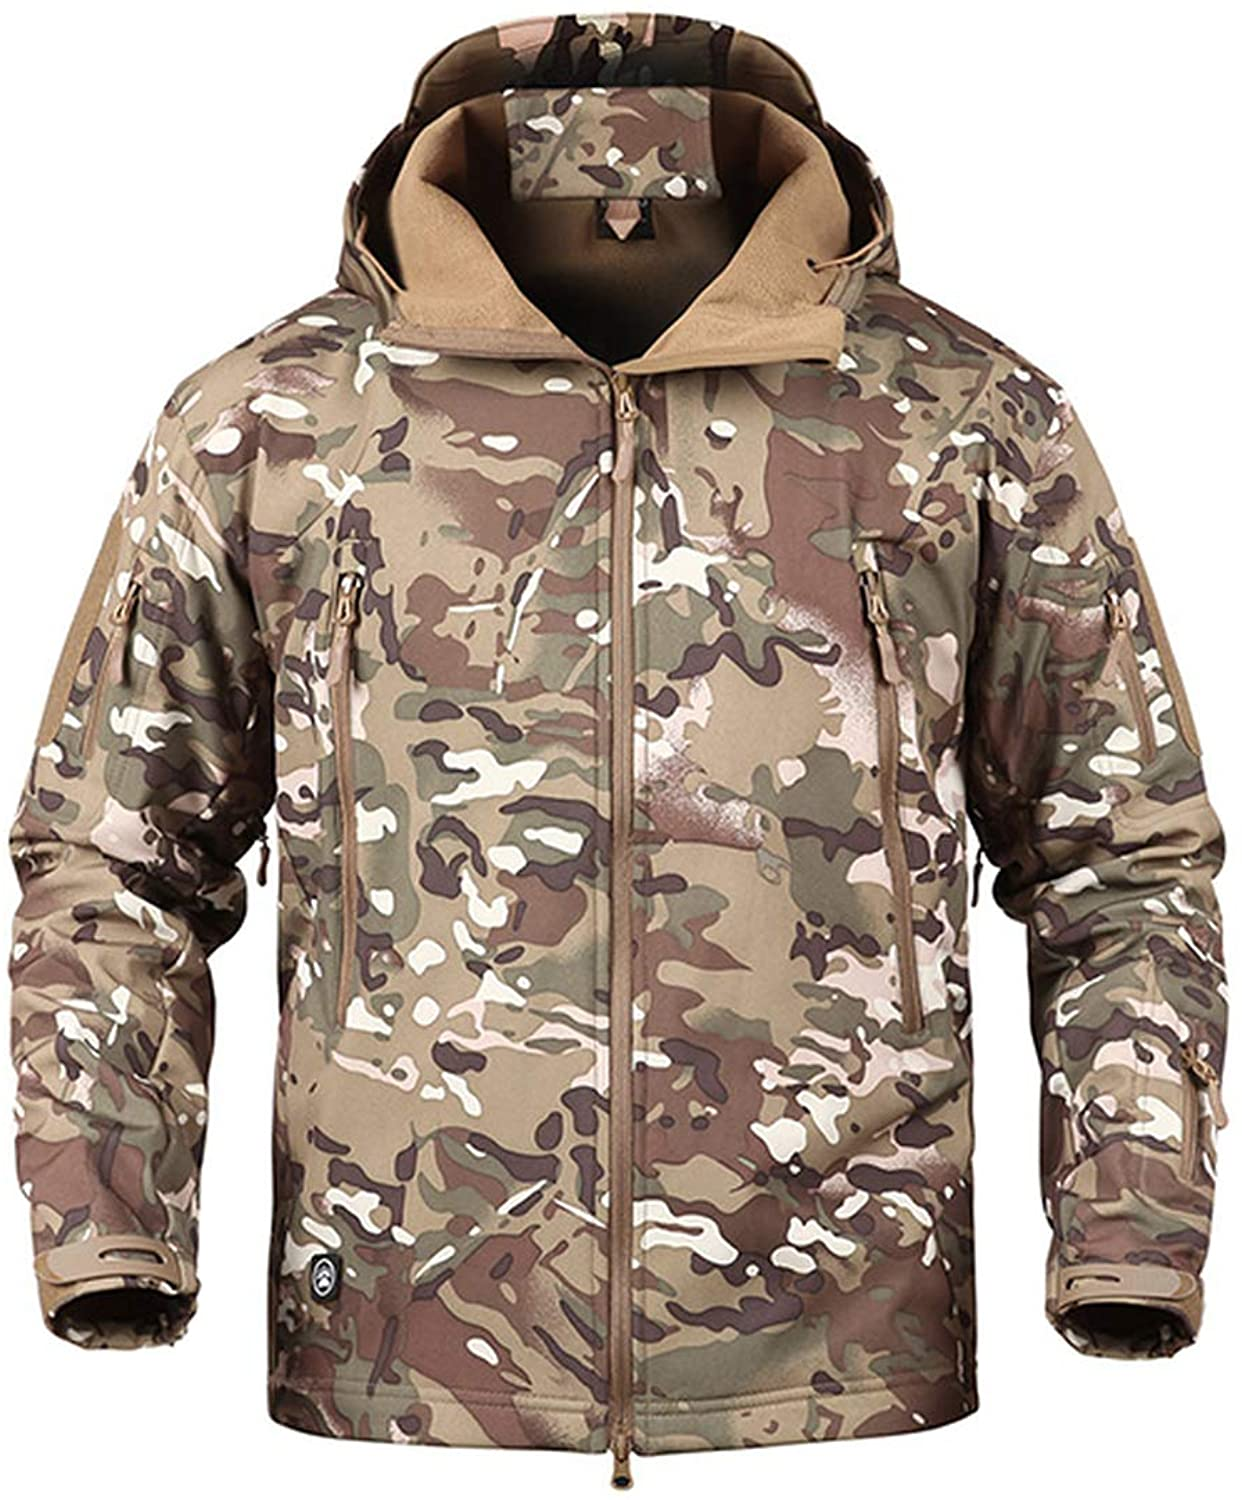 Waterproof Windproof Soft Shell Camouflage Jackets Men Hooded Winter Warm Fleece